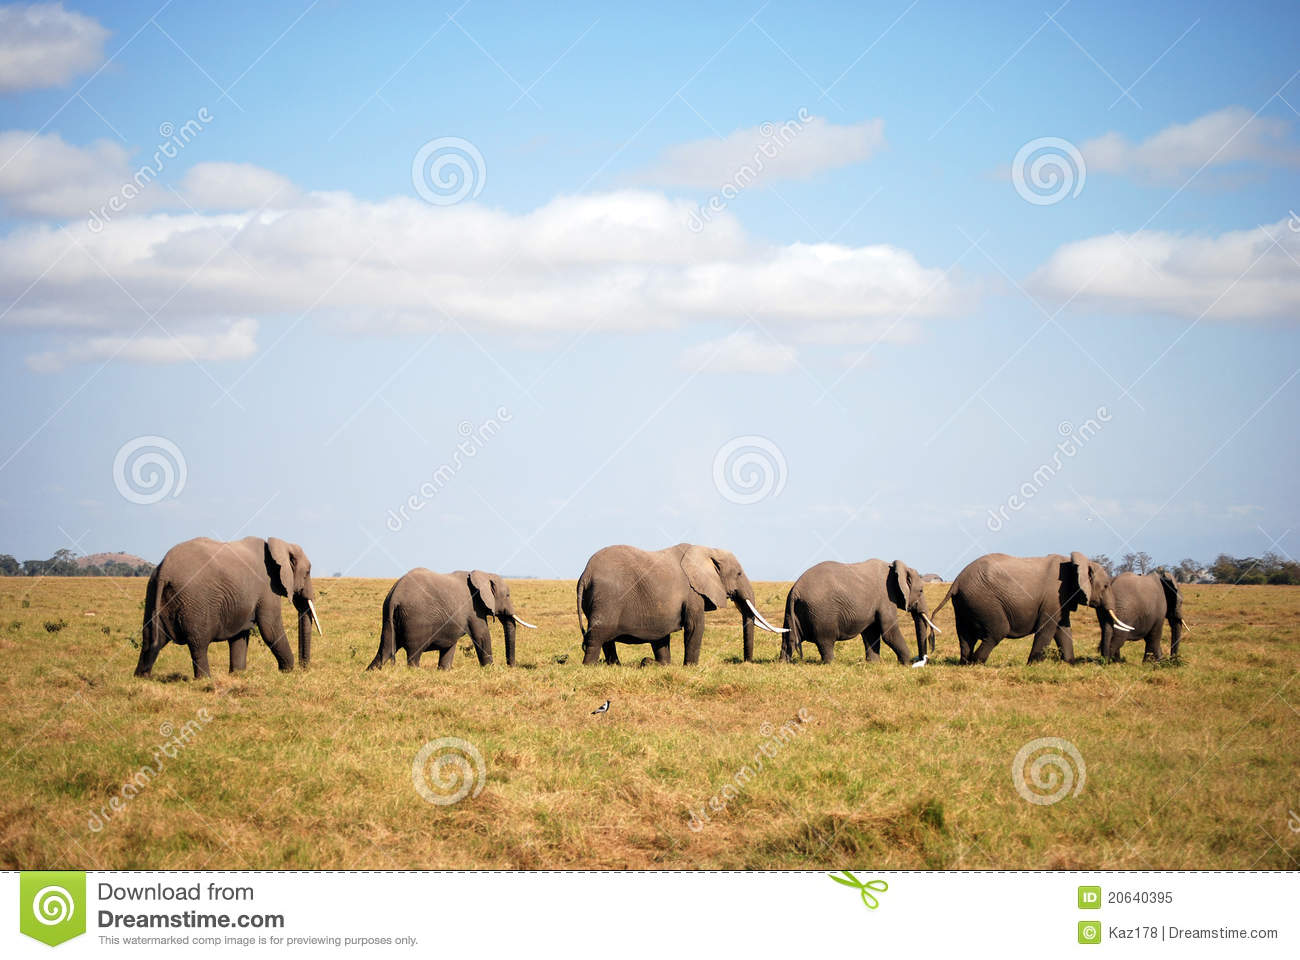 ambesoli elephants in line royalty free stock photo